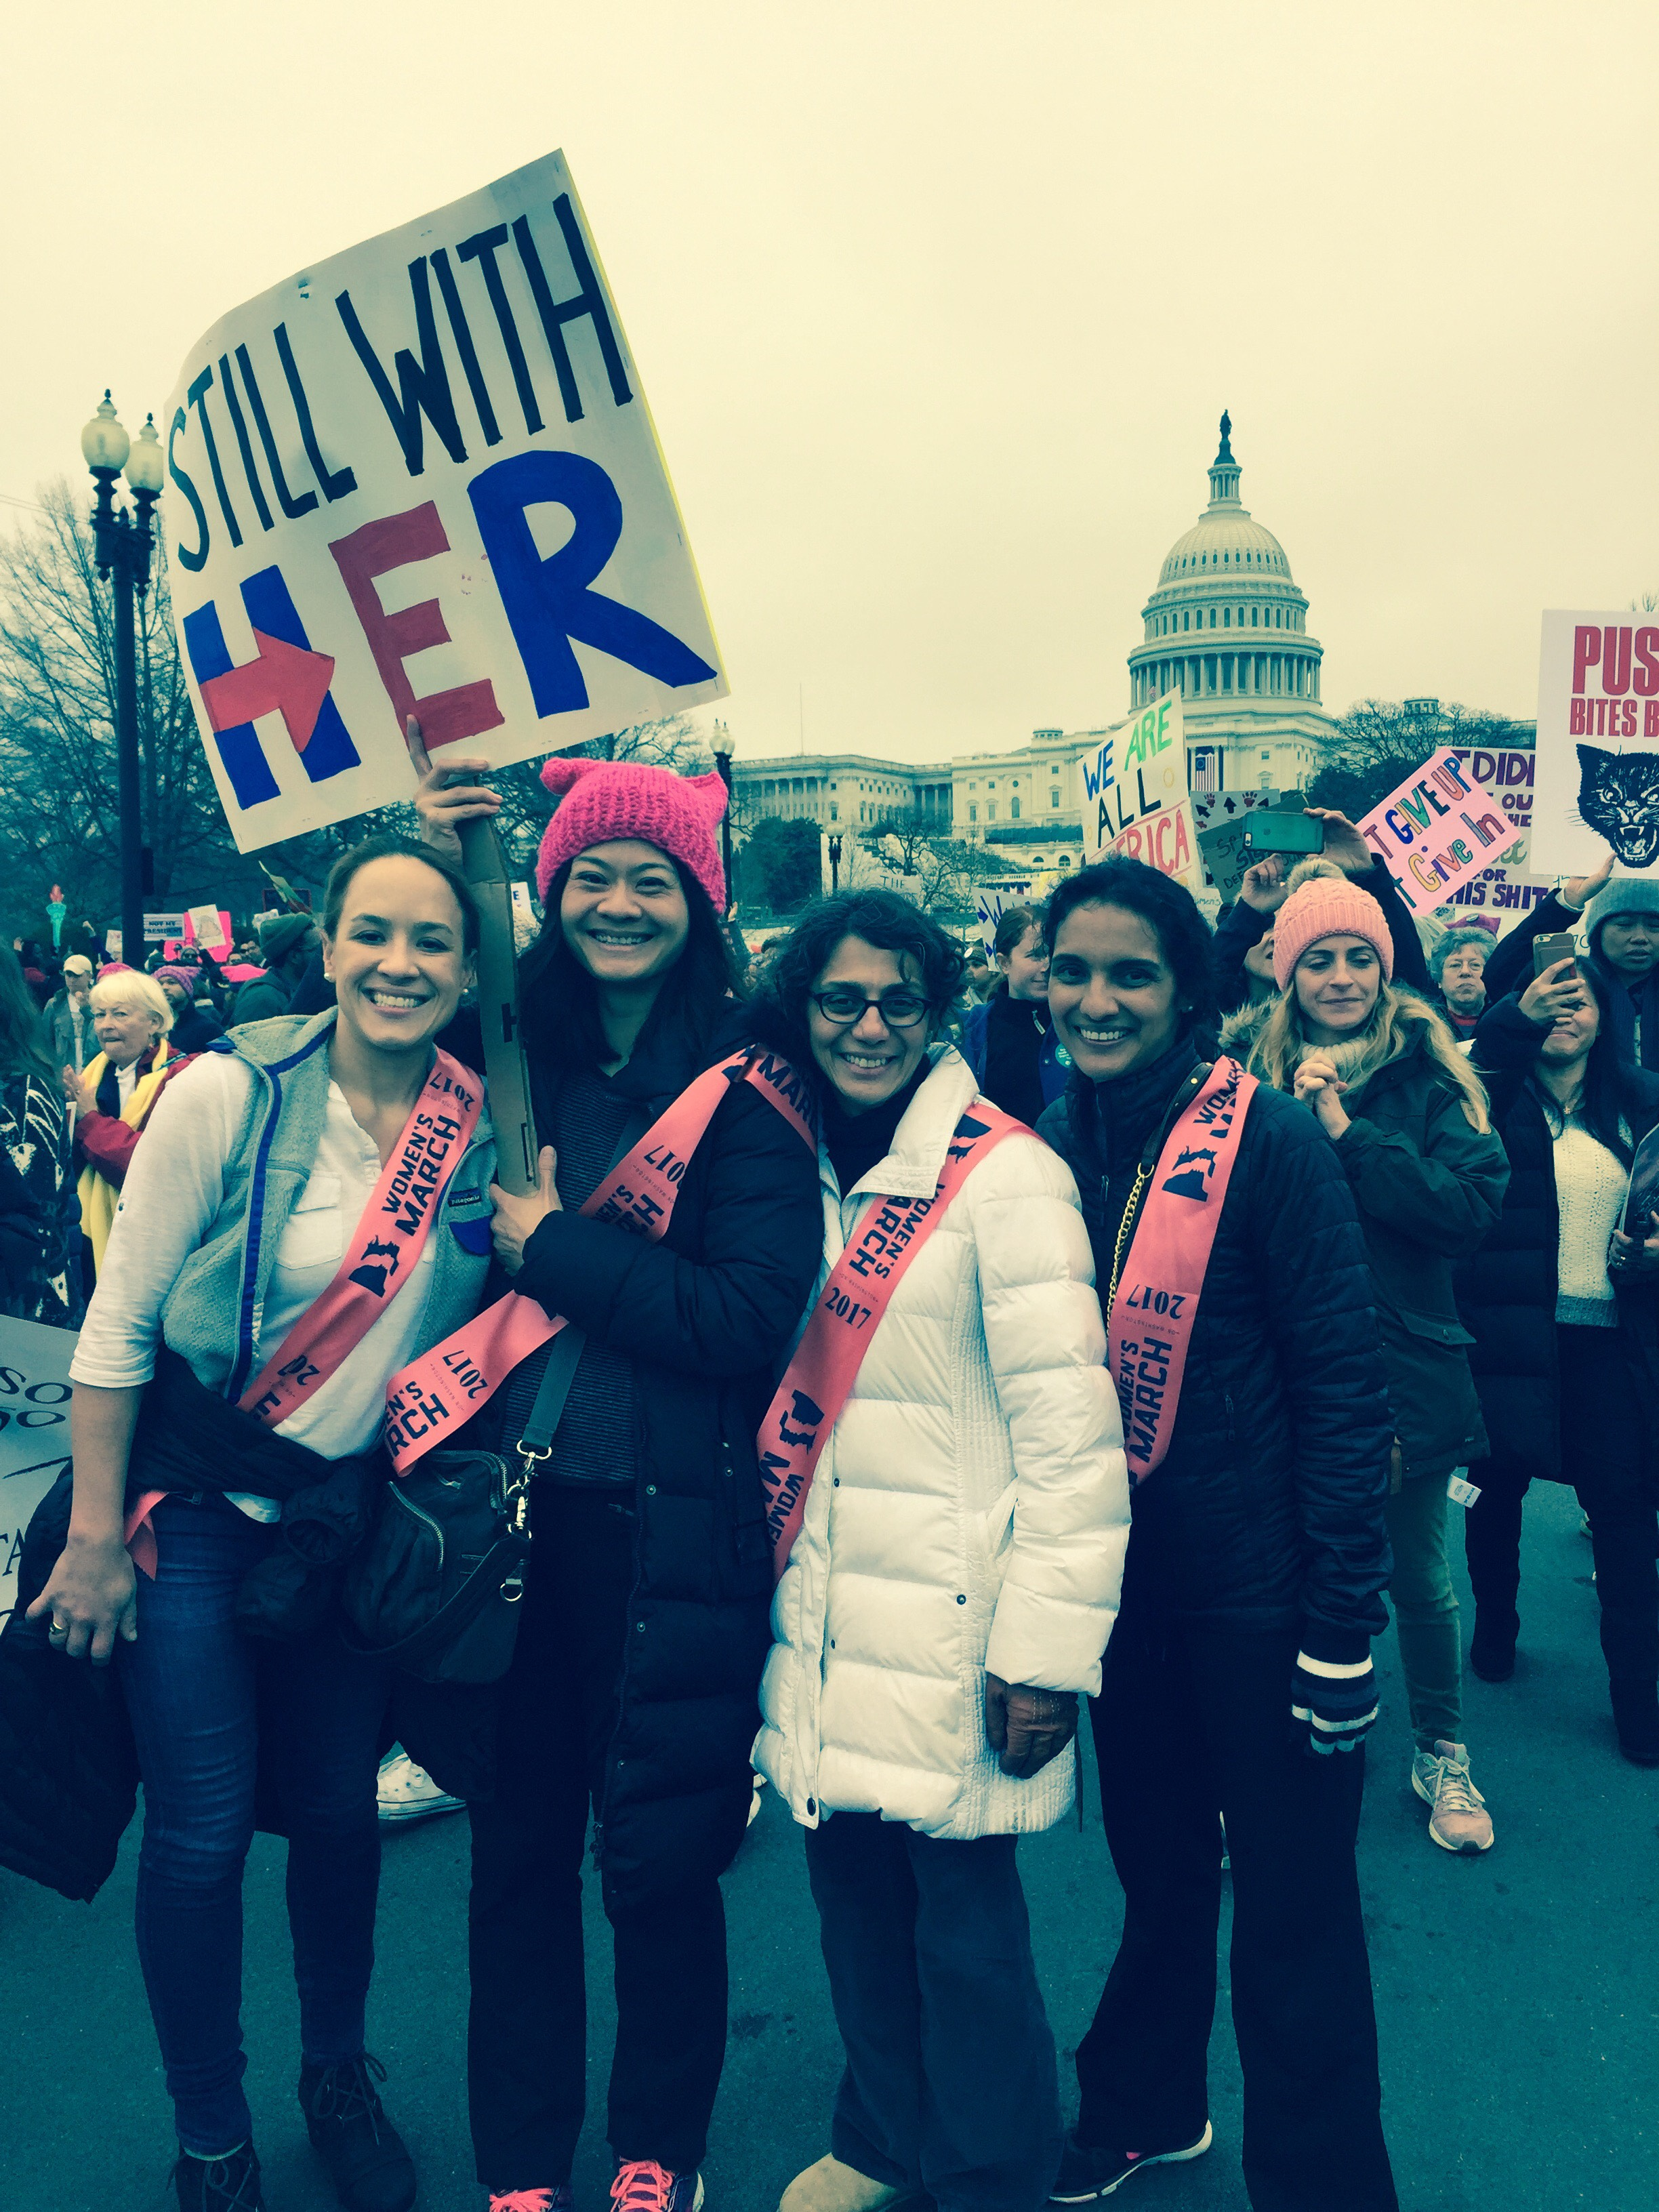 women-s-march-on-washington-2017-sassy-sashes-on-women-in-camaraderie.-stronger-together..jpg